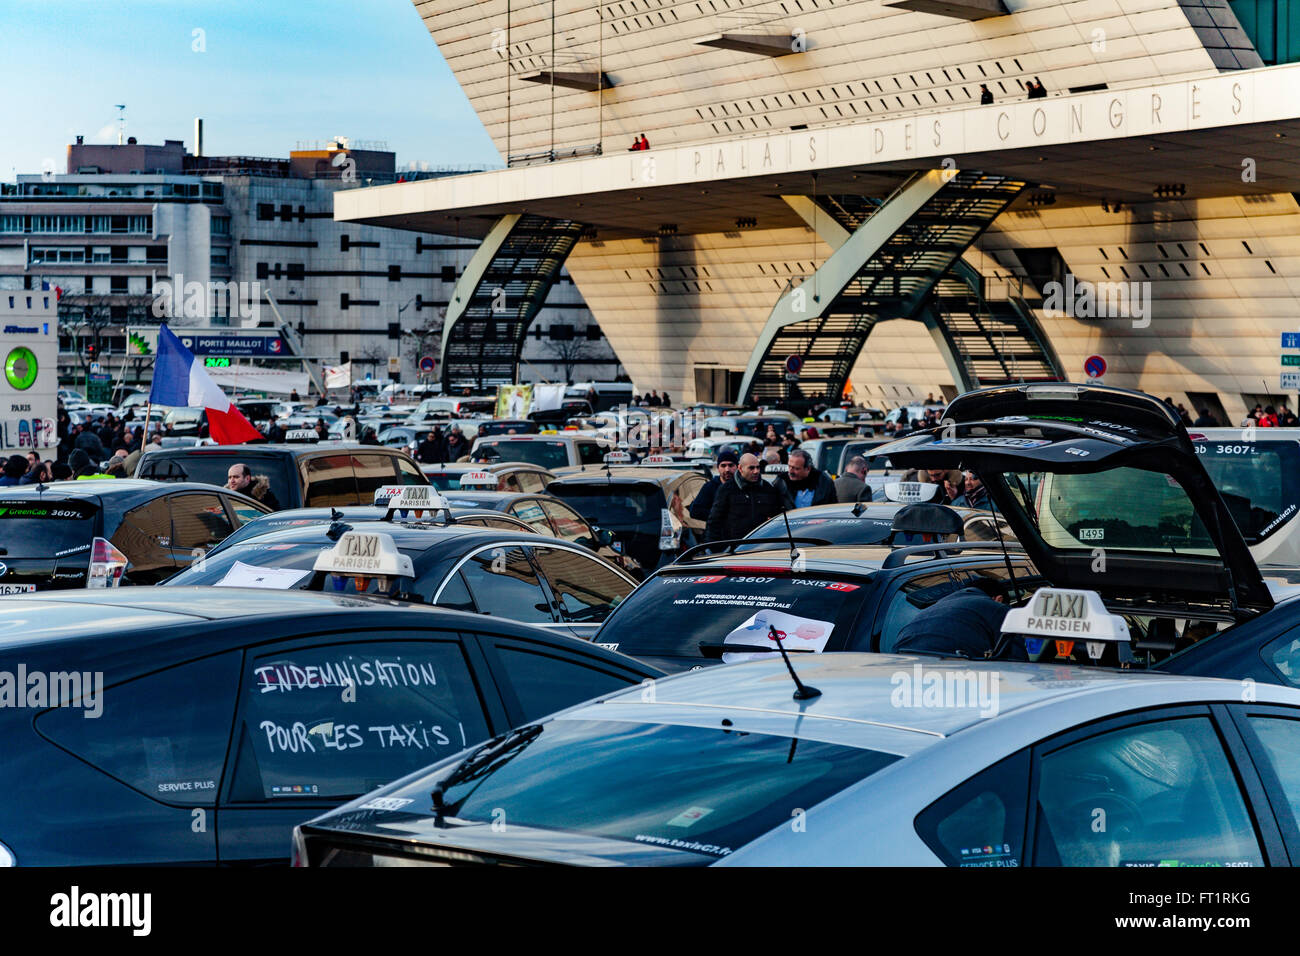 French parisian Taxis on strikes against Uber - Stock Image